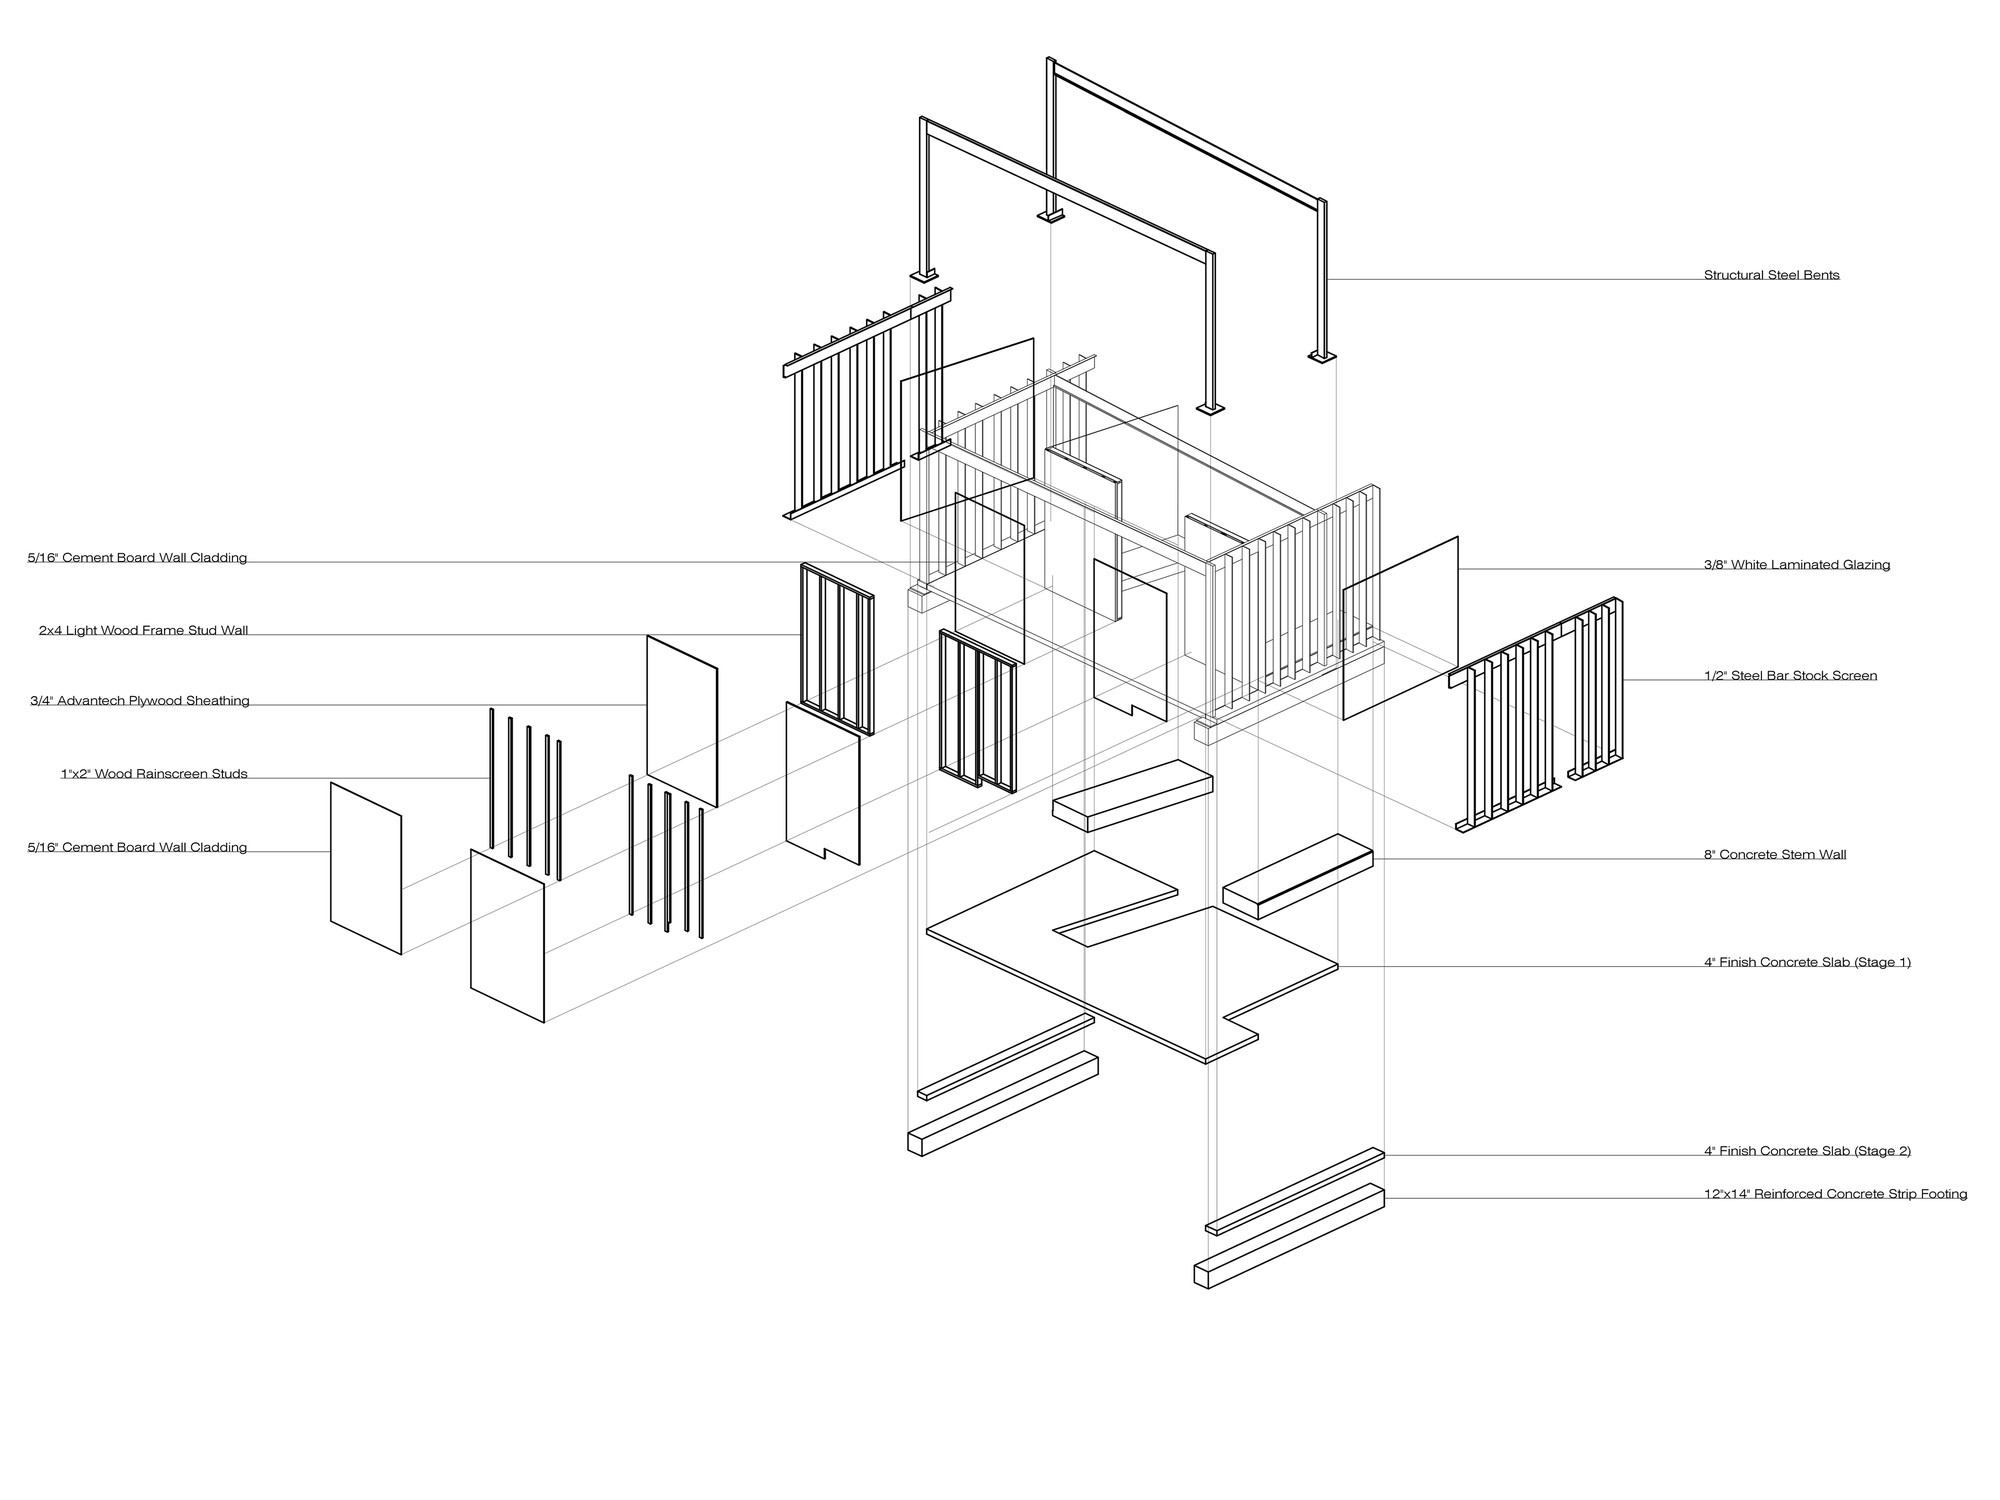 exploded axon diagram copyright architectural drawings and sharon fieldhouse design buildlab archdaily